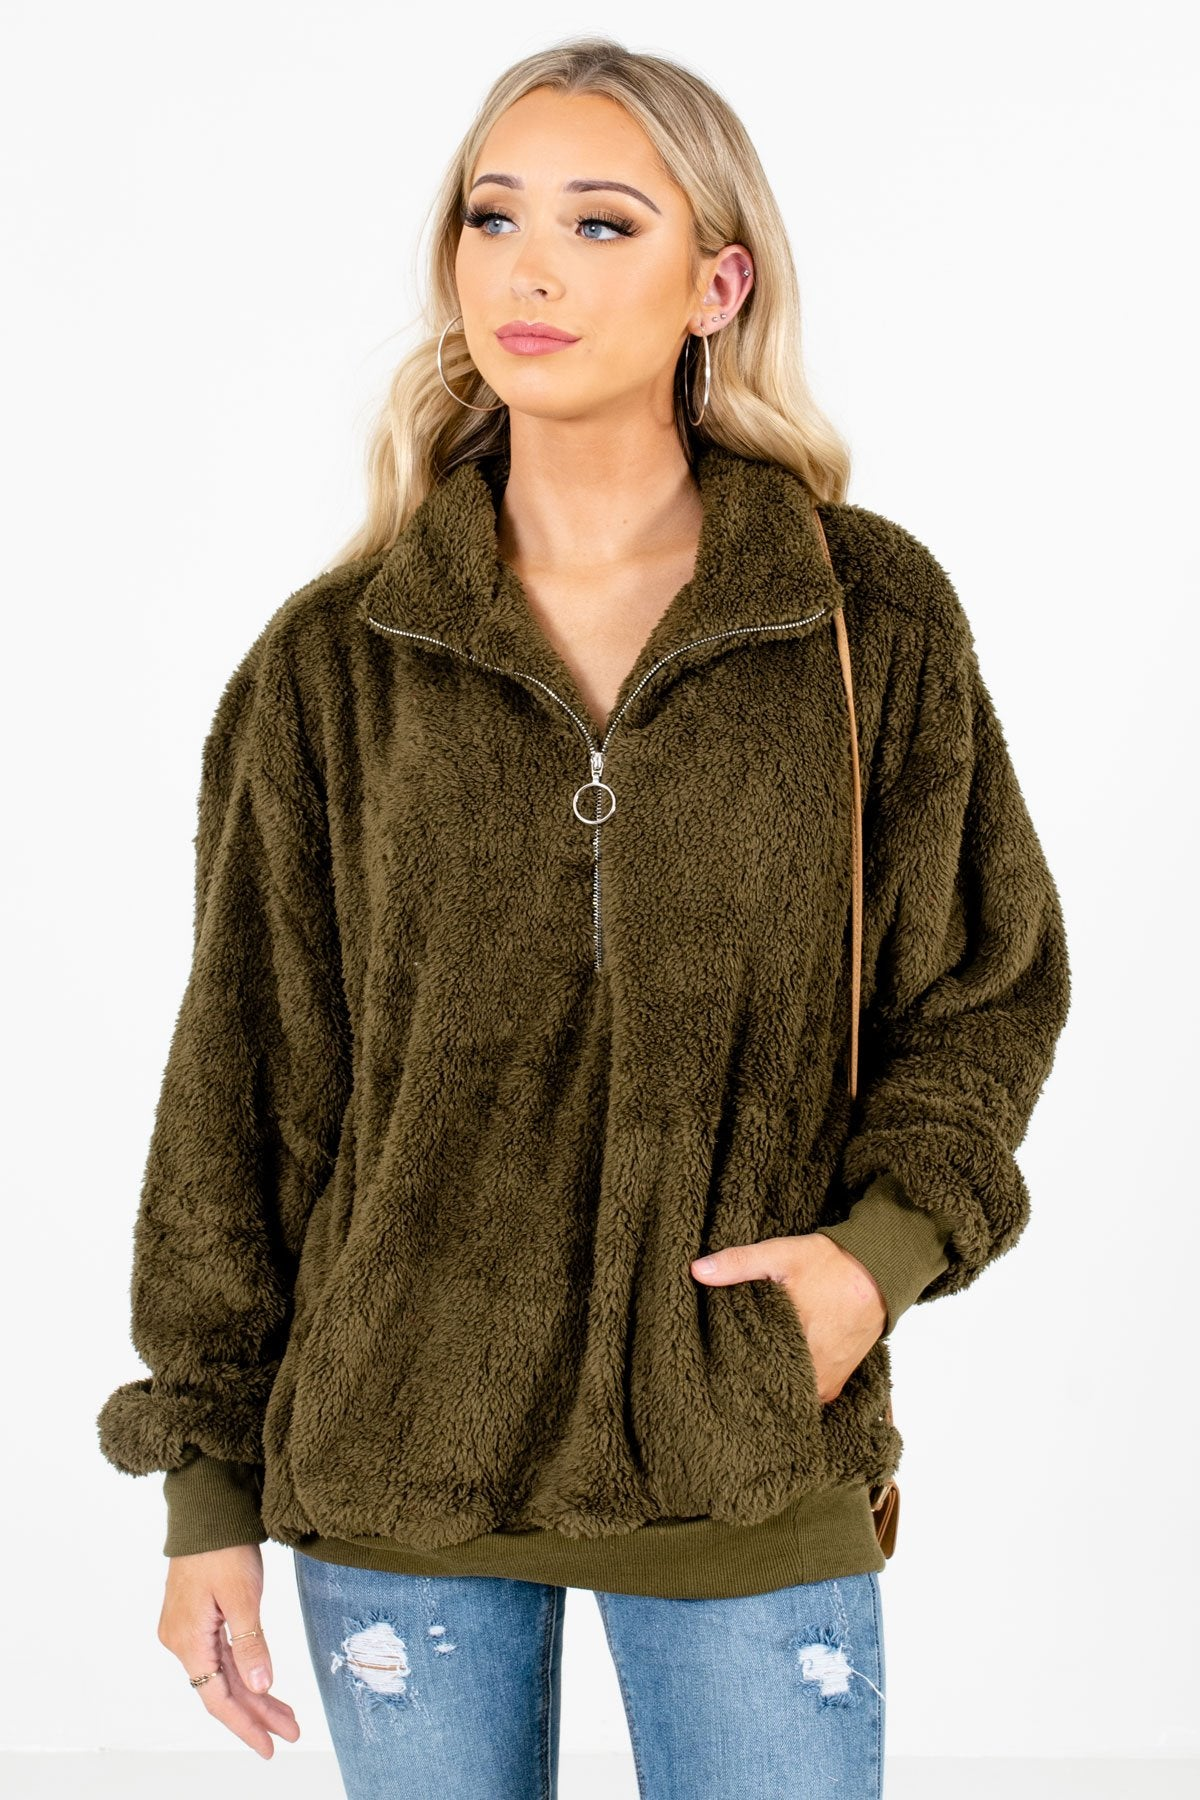 Olive Green High-Quality Fuzzy Material Boutique Pullovers for Women